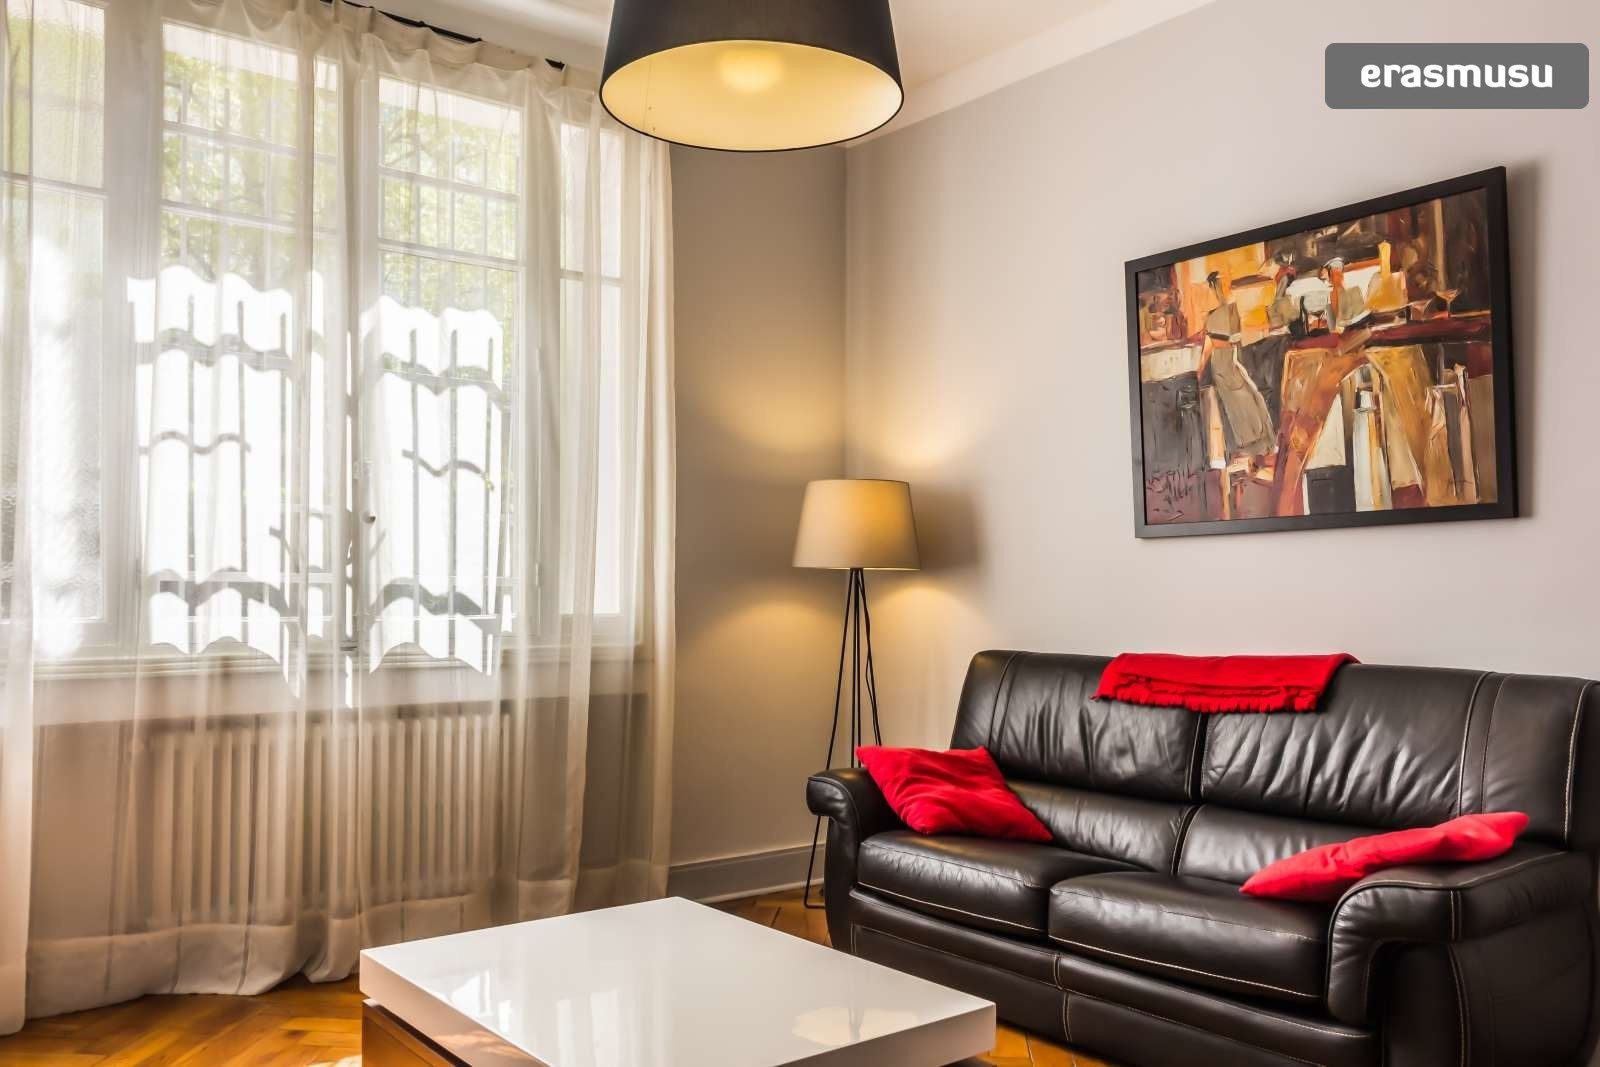 luxurious-fully-furnished-1-bedroom-apartment-rent-b0ba356f4a029